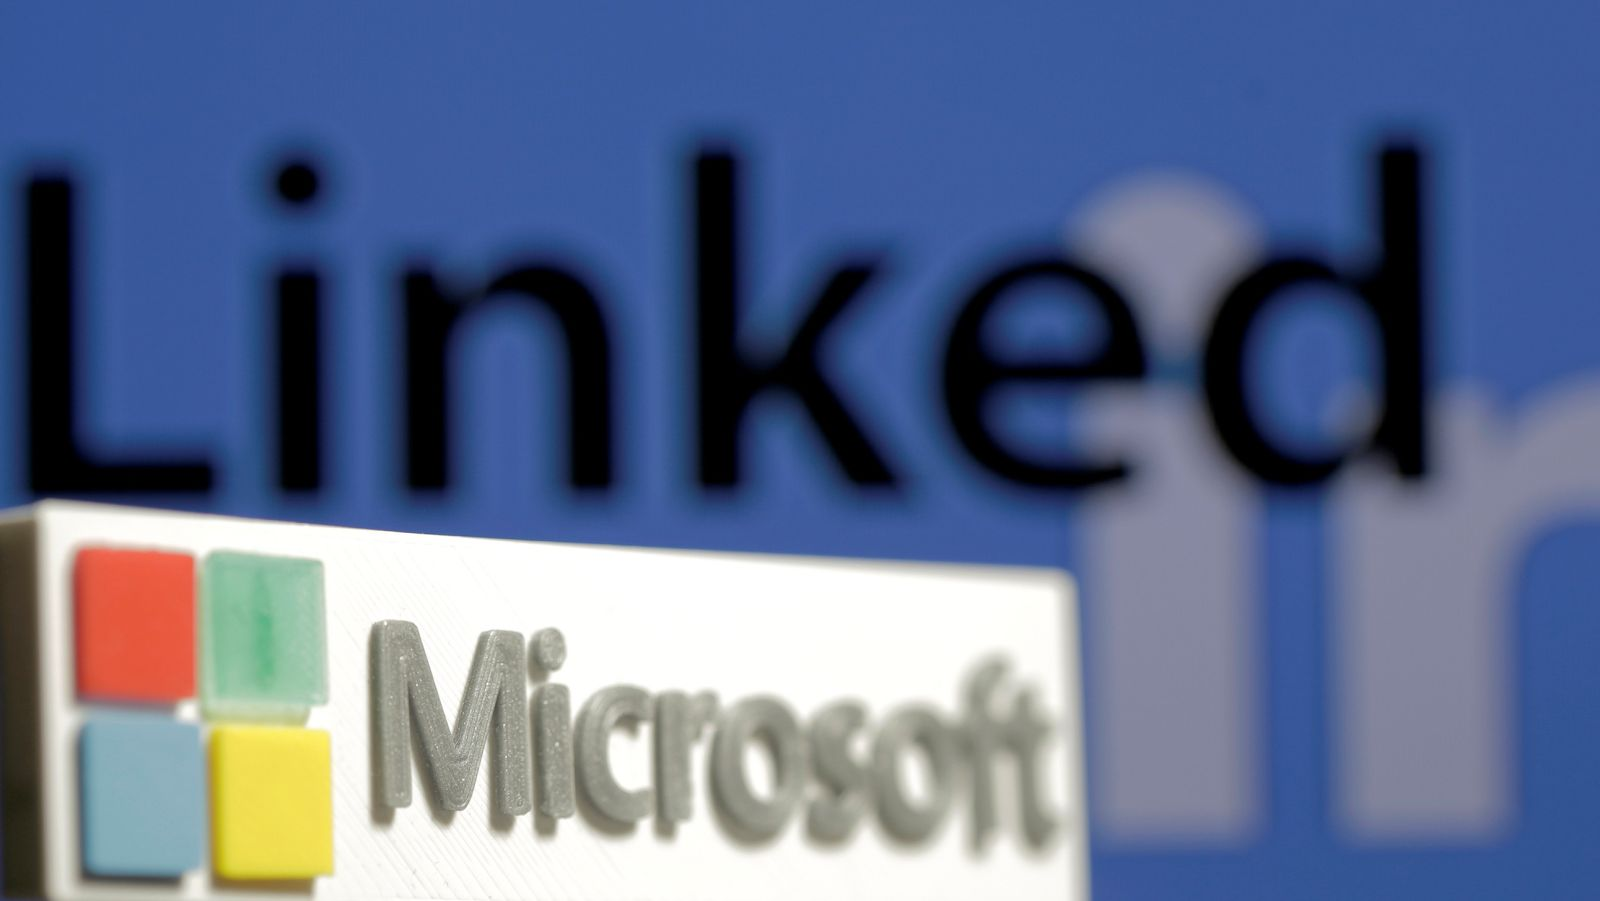 Microsoft to buy networking site LinkedIn for $26.2 billion by Ahmed Fattouh in Edmonton AB